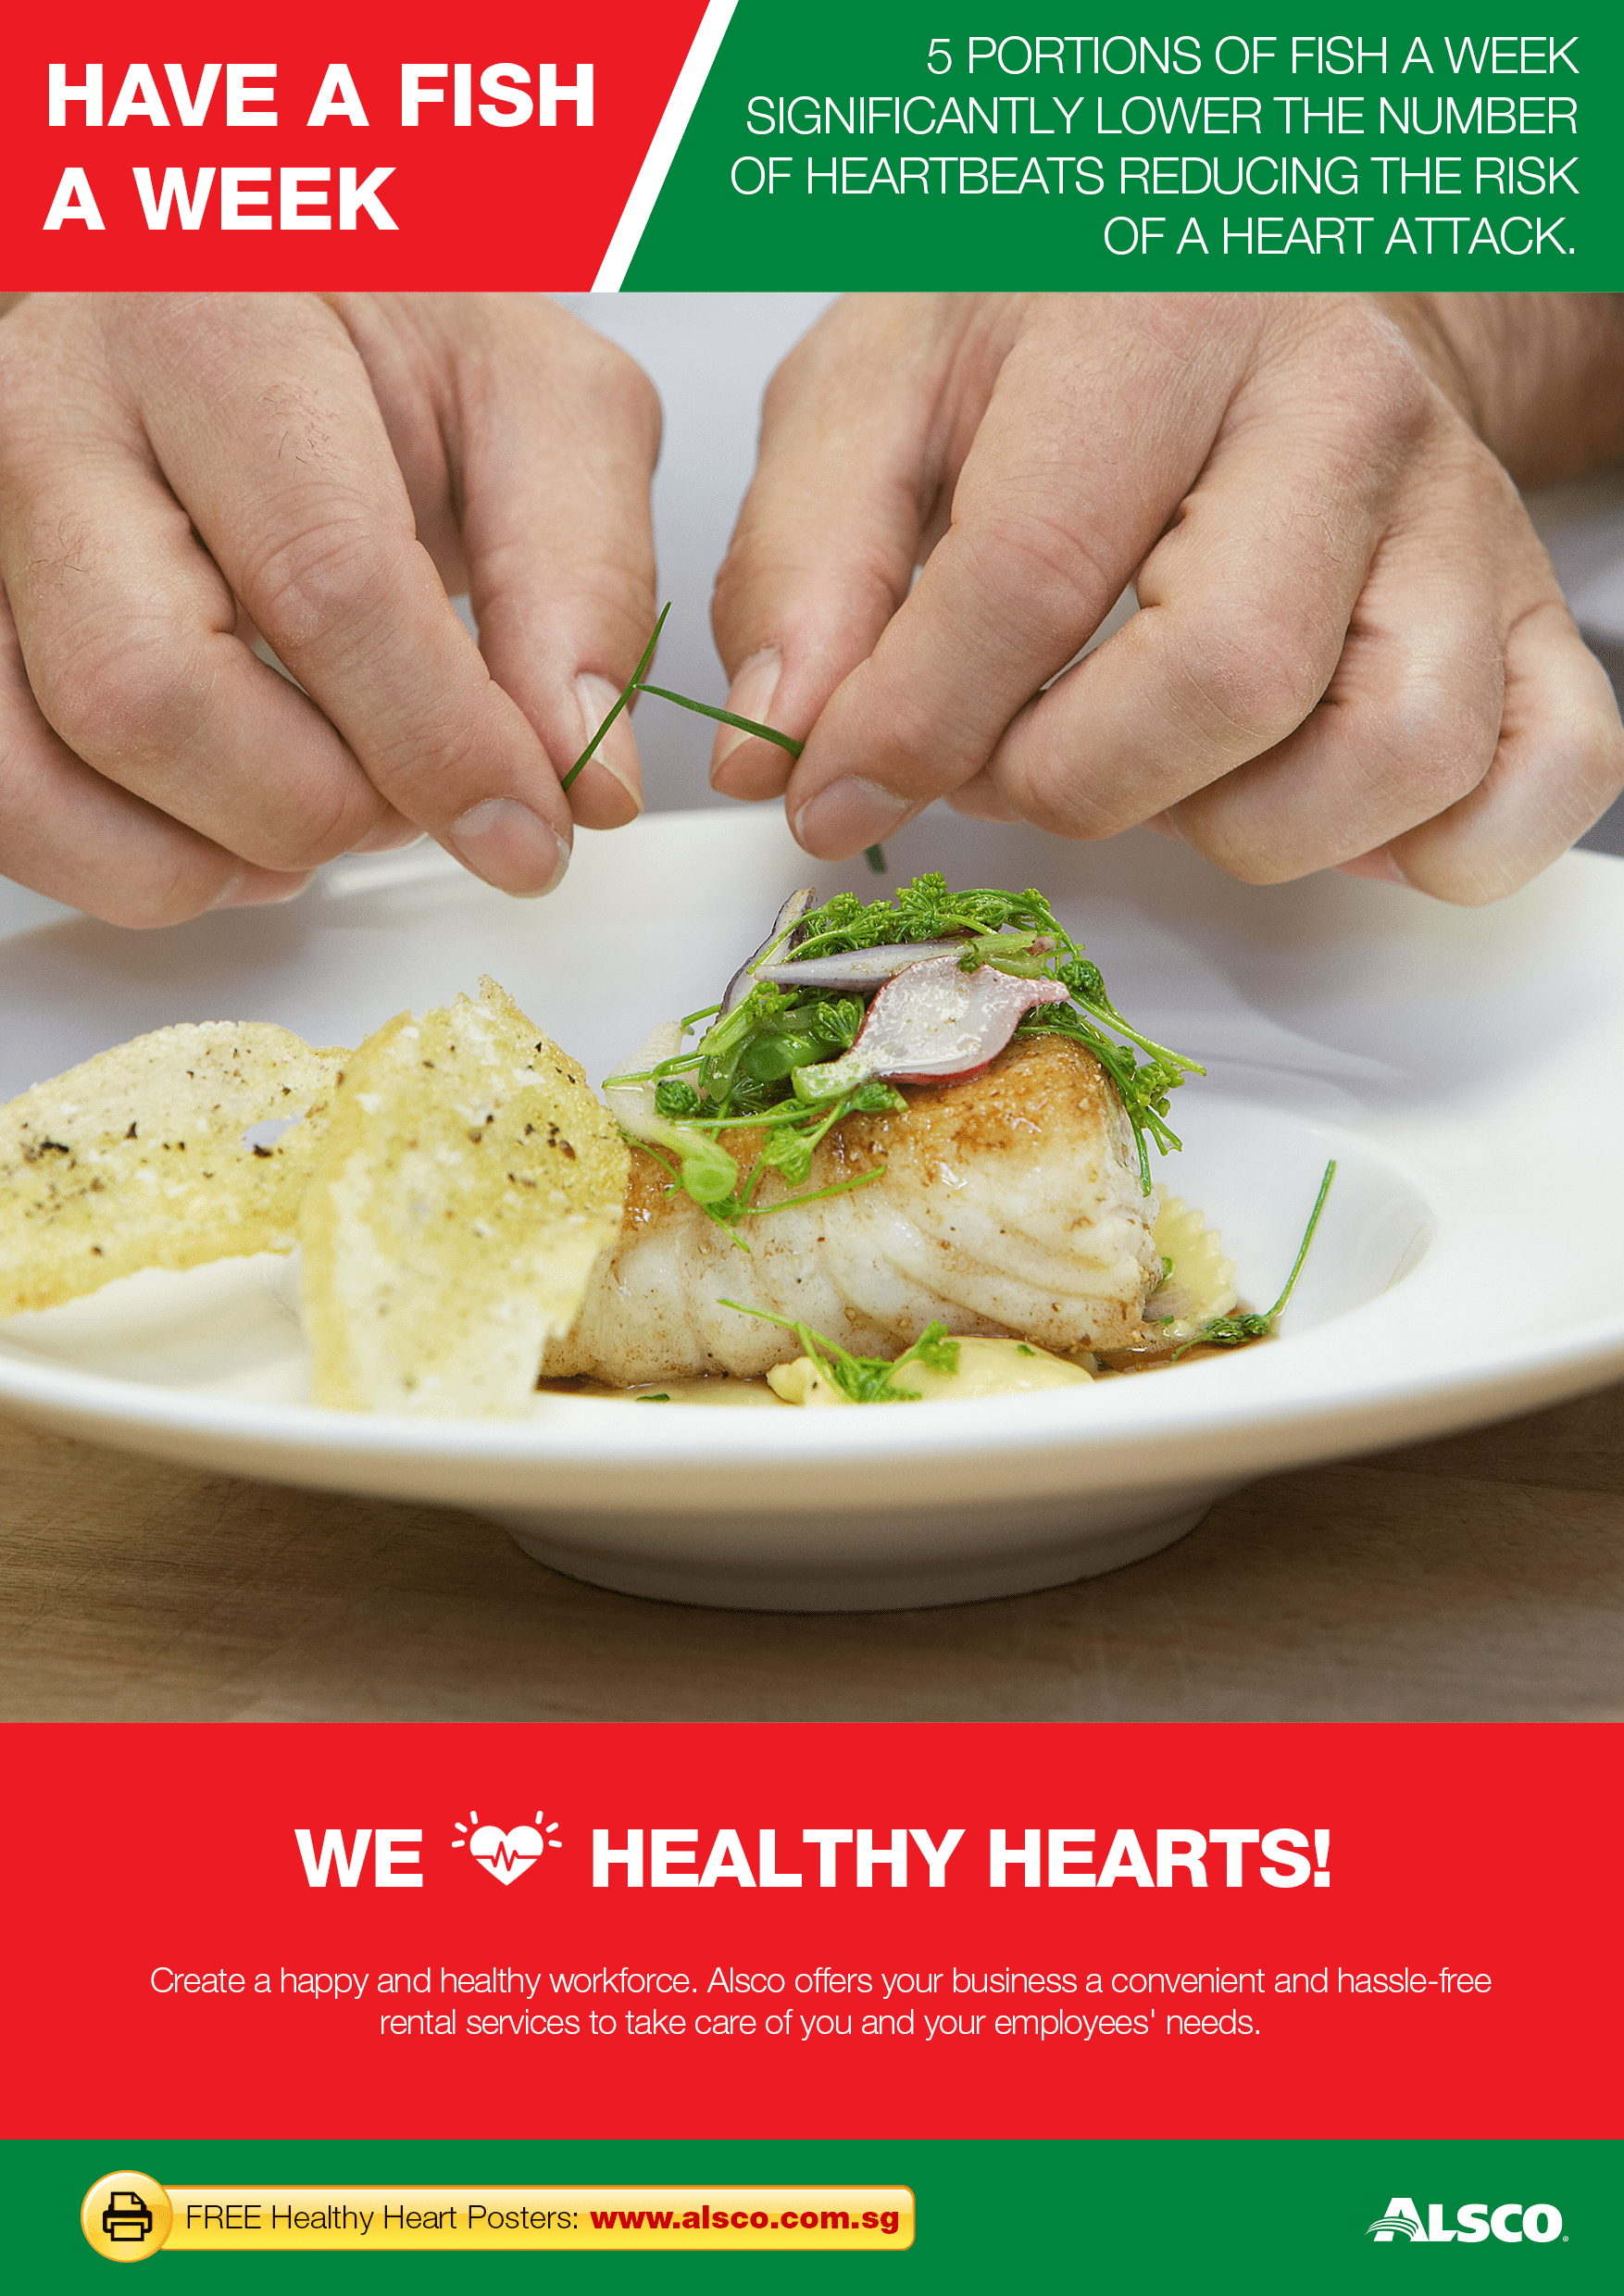 Sg workplace resources healthy hearts eat fish alsco for Healthiest fish to eat 2017